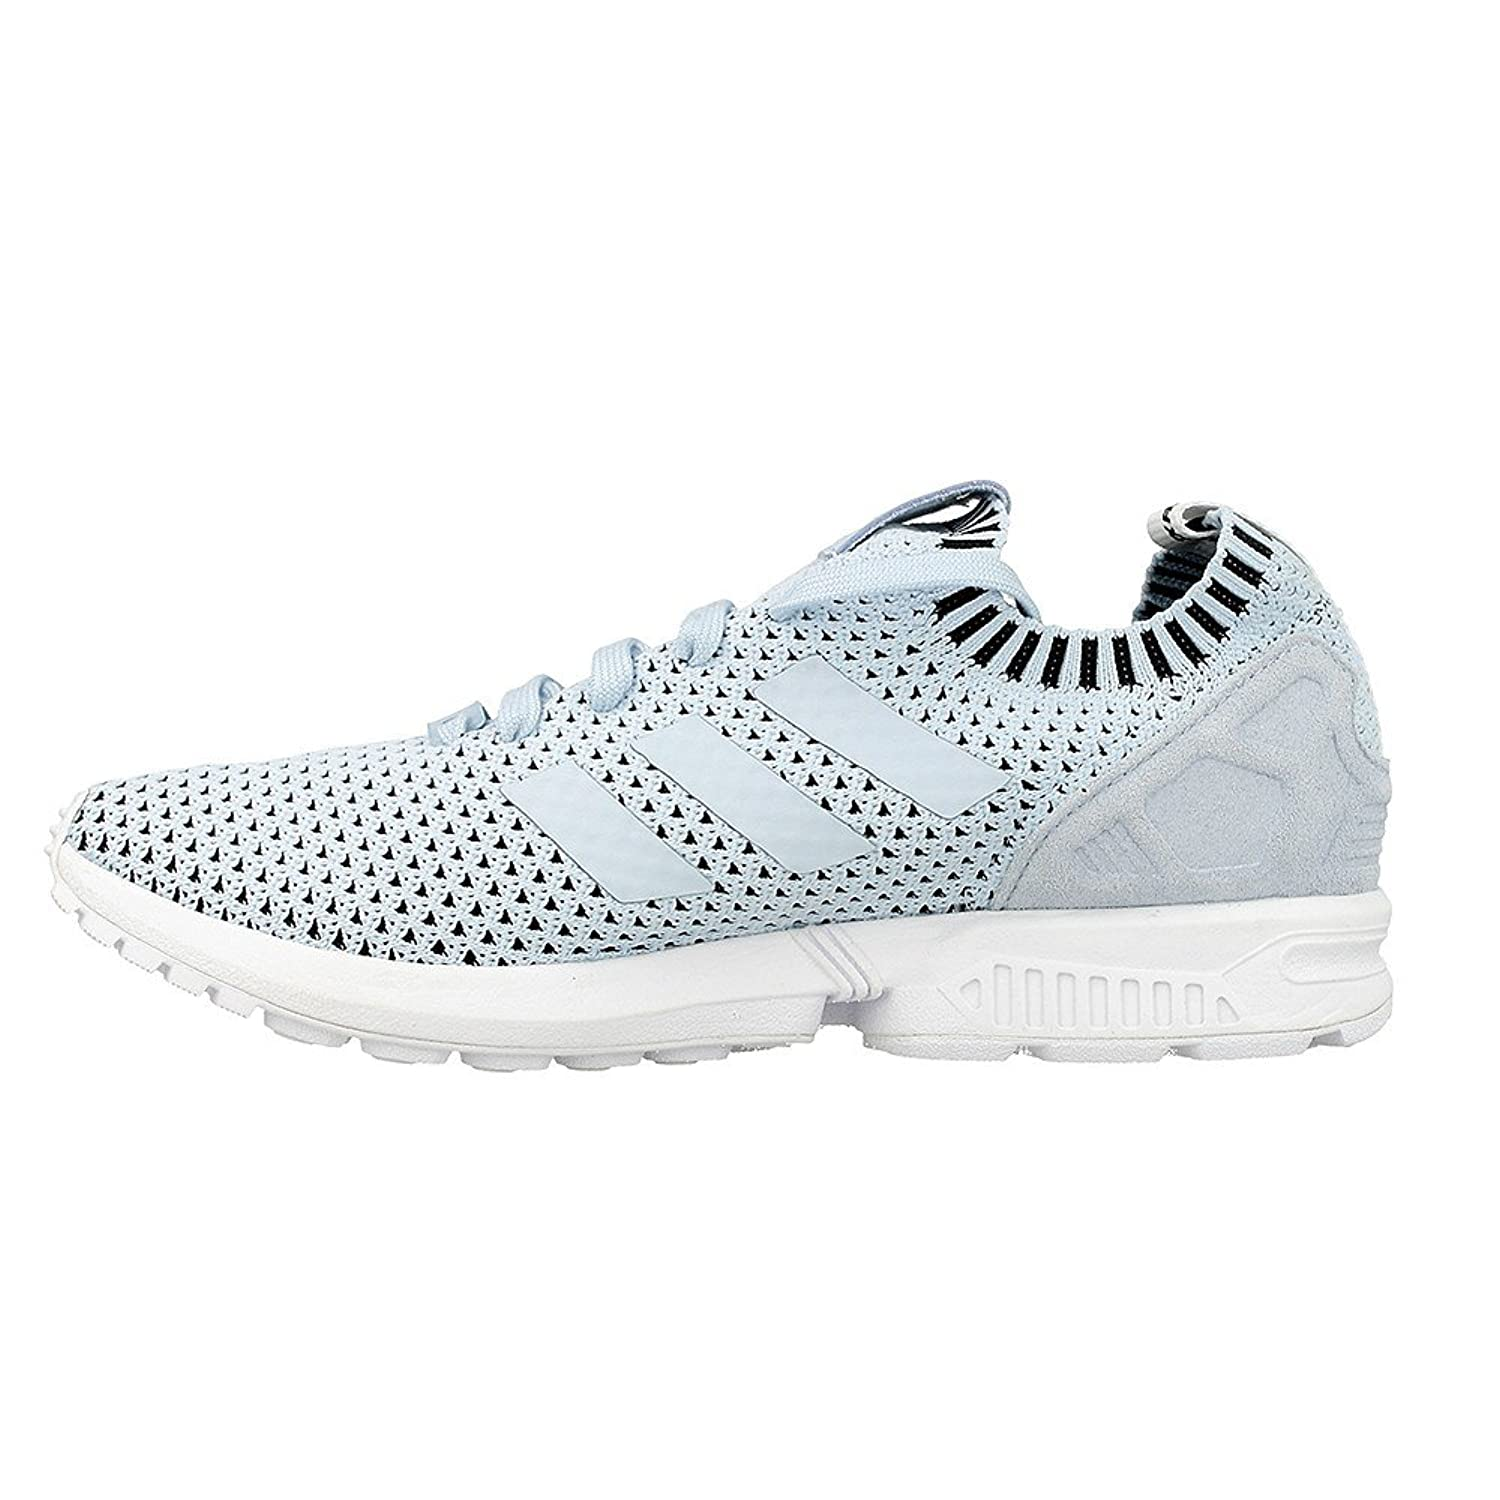 Women BA7646 Gymnastics adidas Low Price Fee Shipping Online Clearance Fake lQZ5uUce